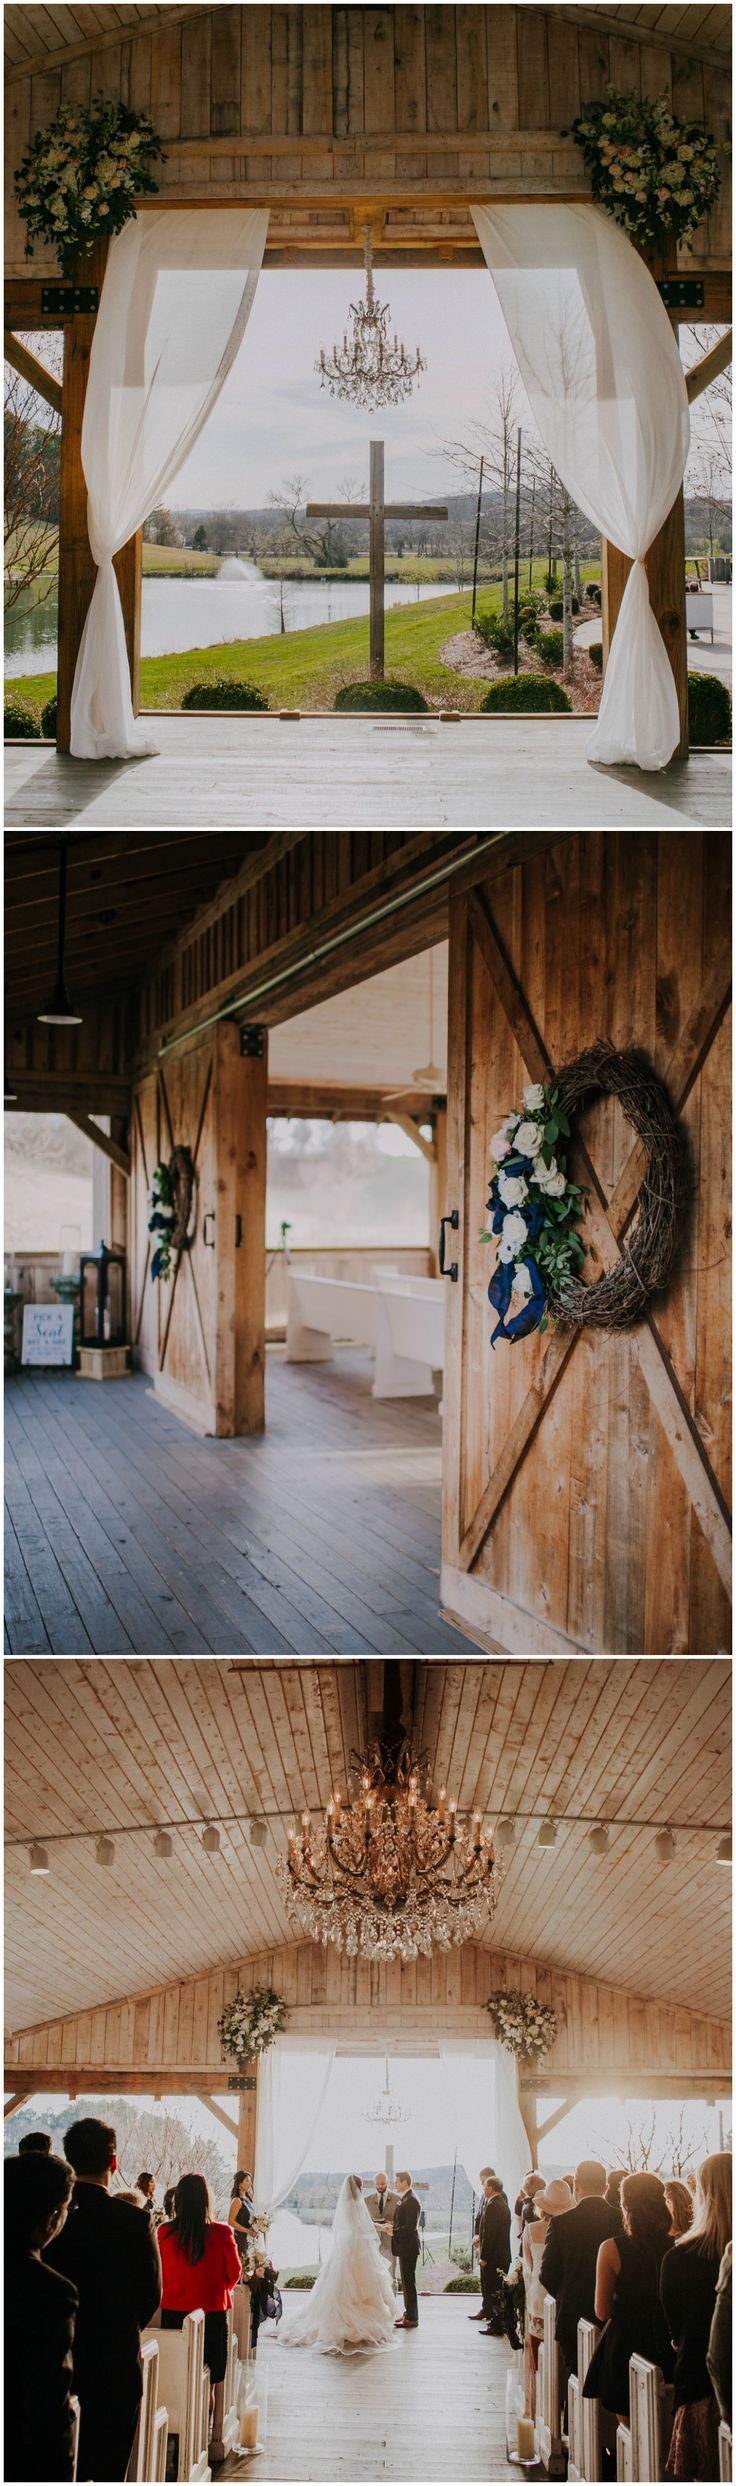 Rustic-romantic wedding ceremony, Southern wedding, wooden cross, draped white fabric, chandelier, white florals // Teale Photography